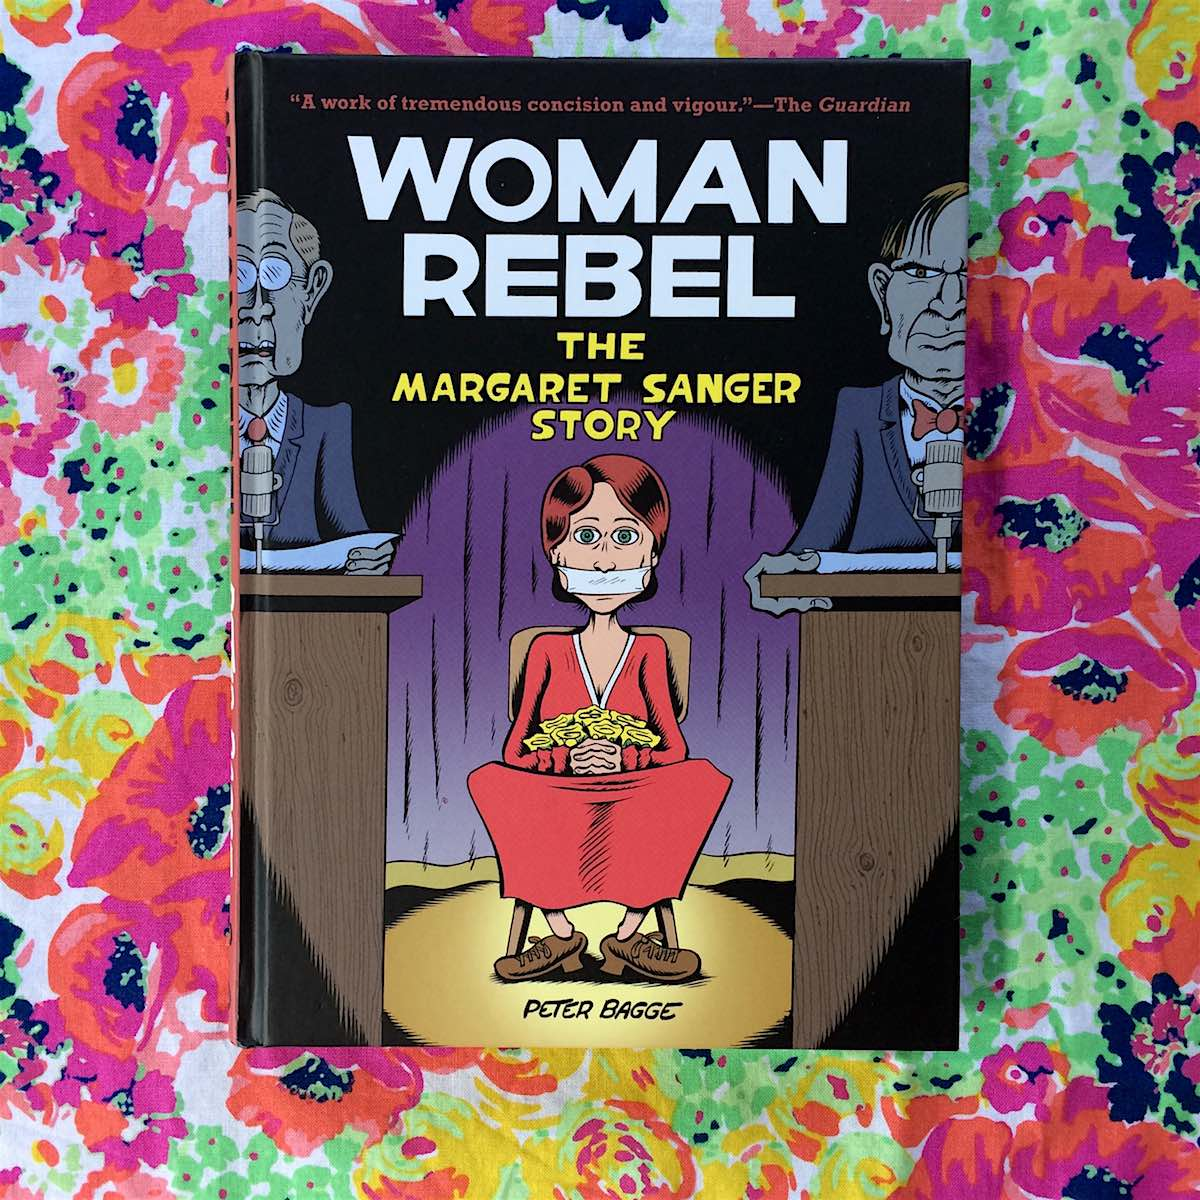 Woman Rebel Peter Bagge's graphic bio of the controversial founder of Planned Parenthood